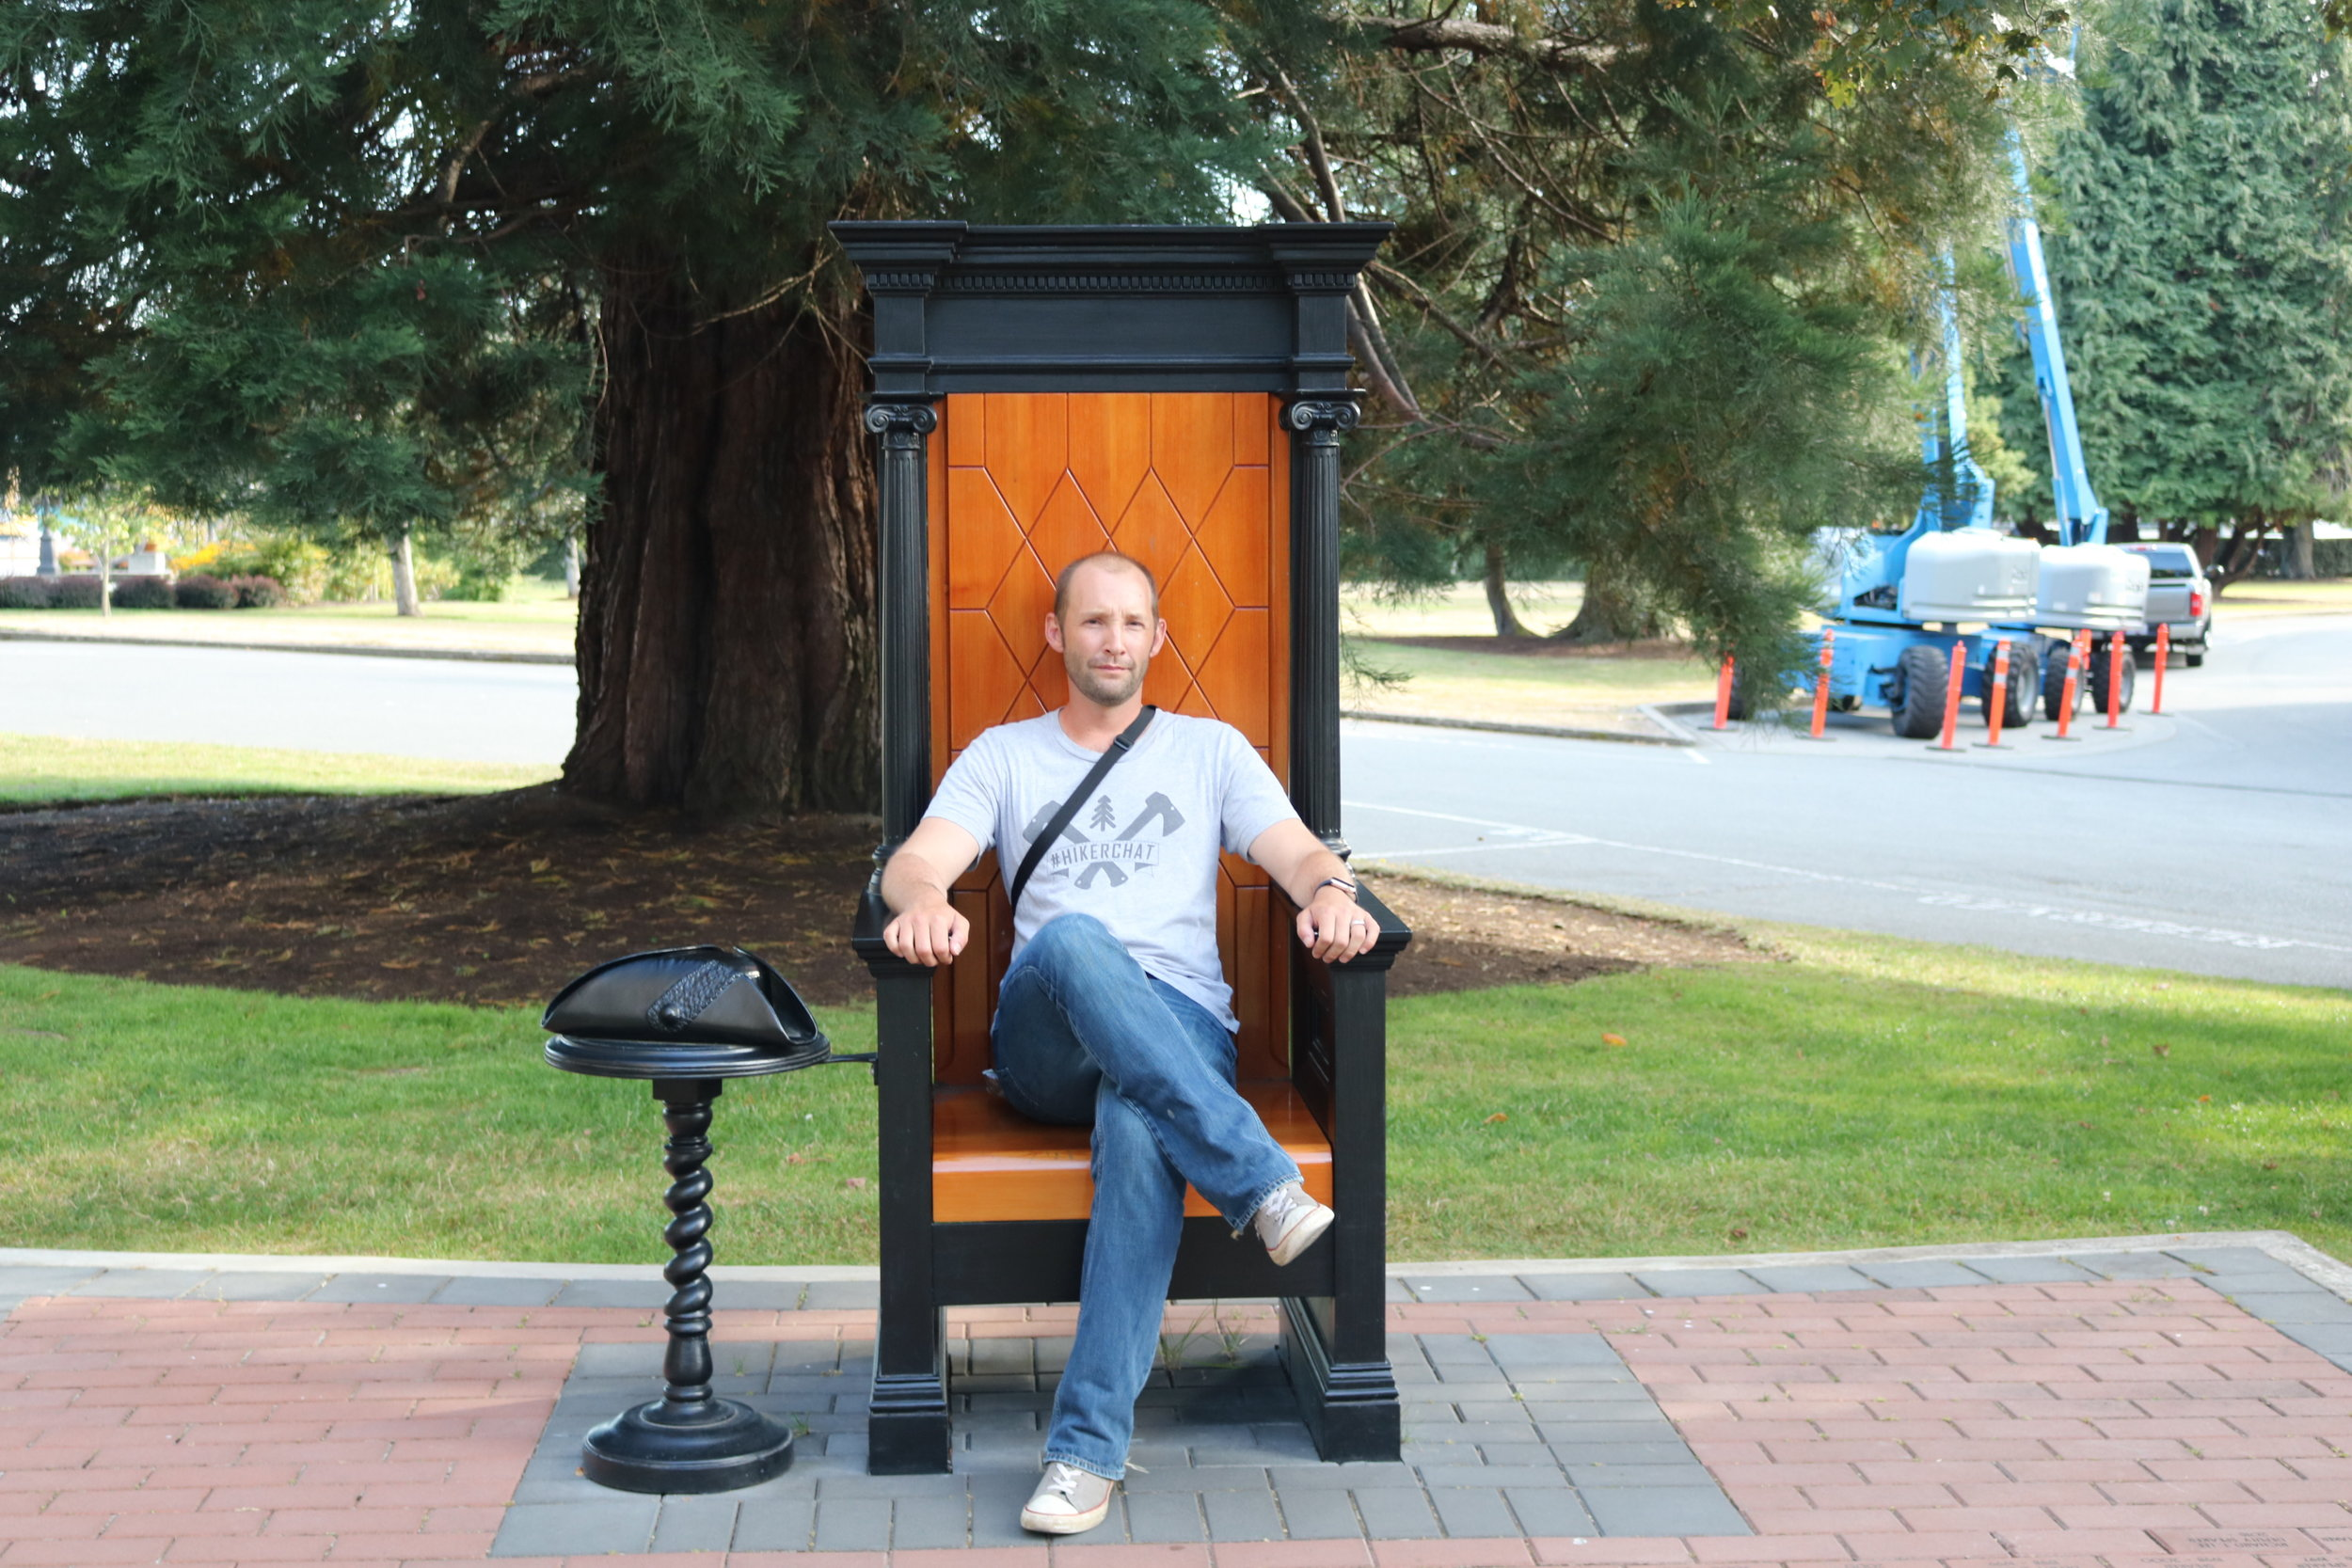 The replica Speaker's Chair provides great photo opportunities, but captures the discomfort of the original perfectly.